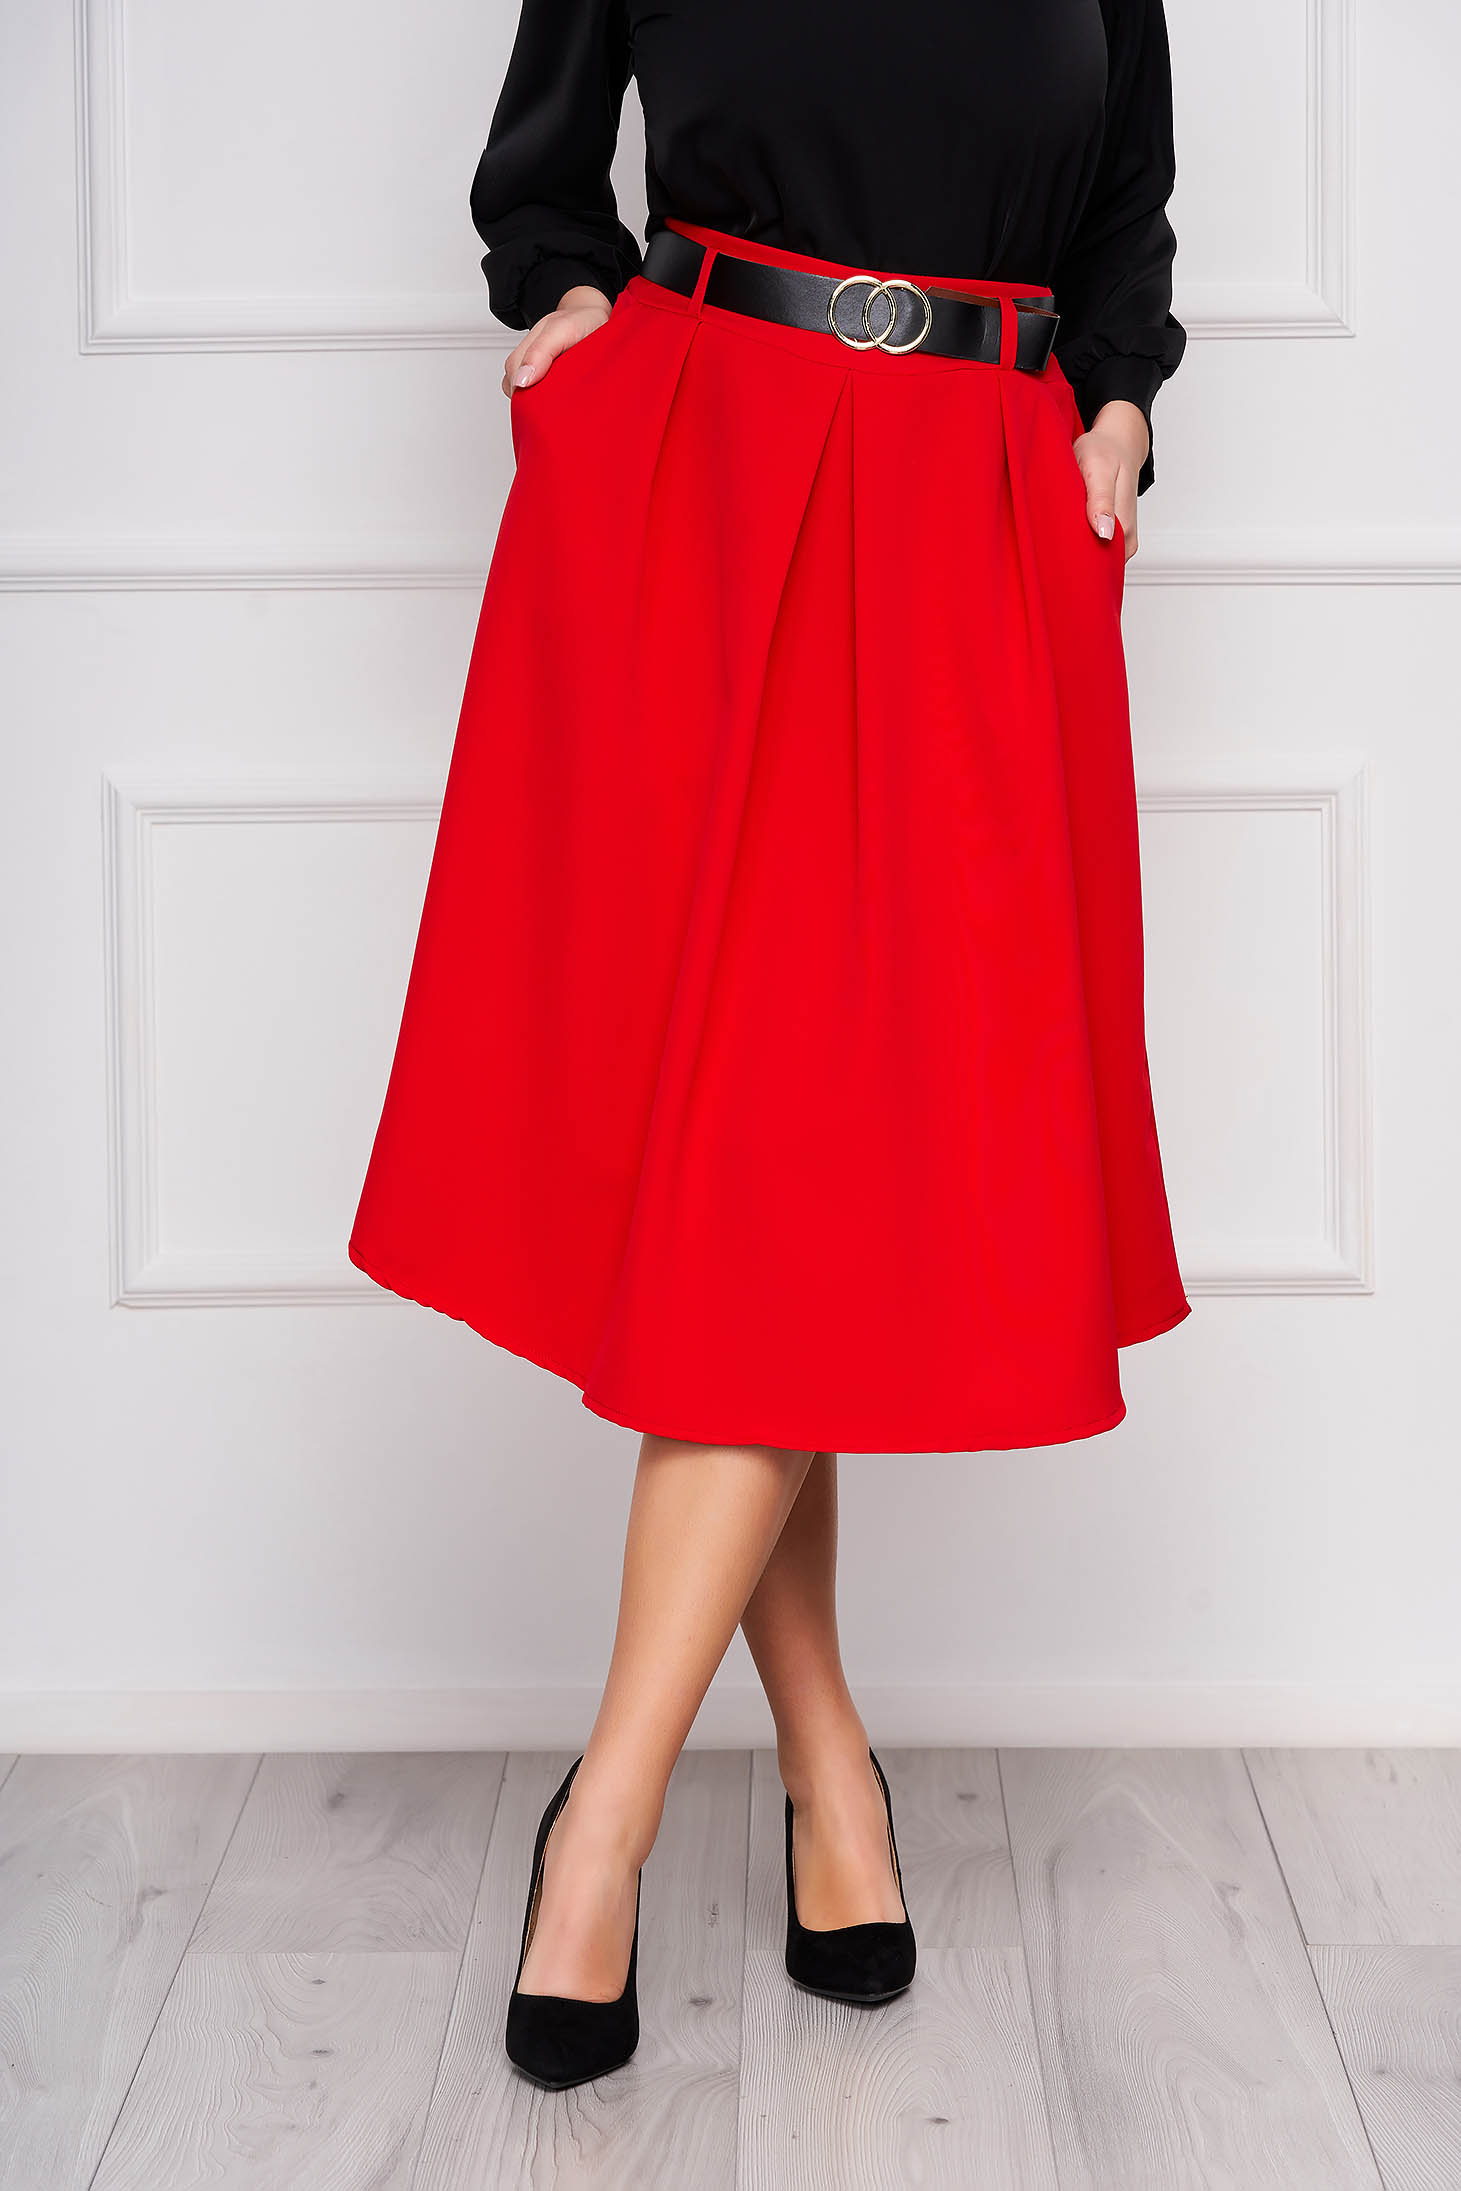 Red skirt cloche midi office accessorized with belt with pockets pleats of material